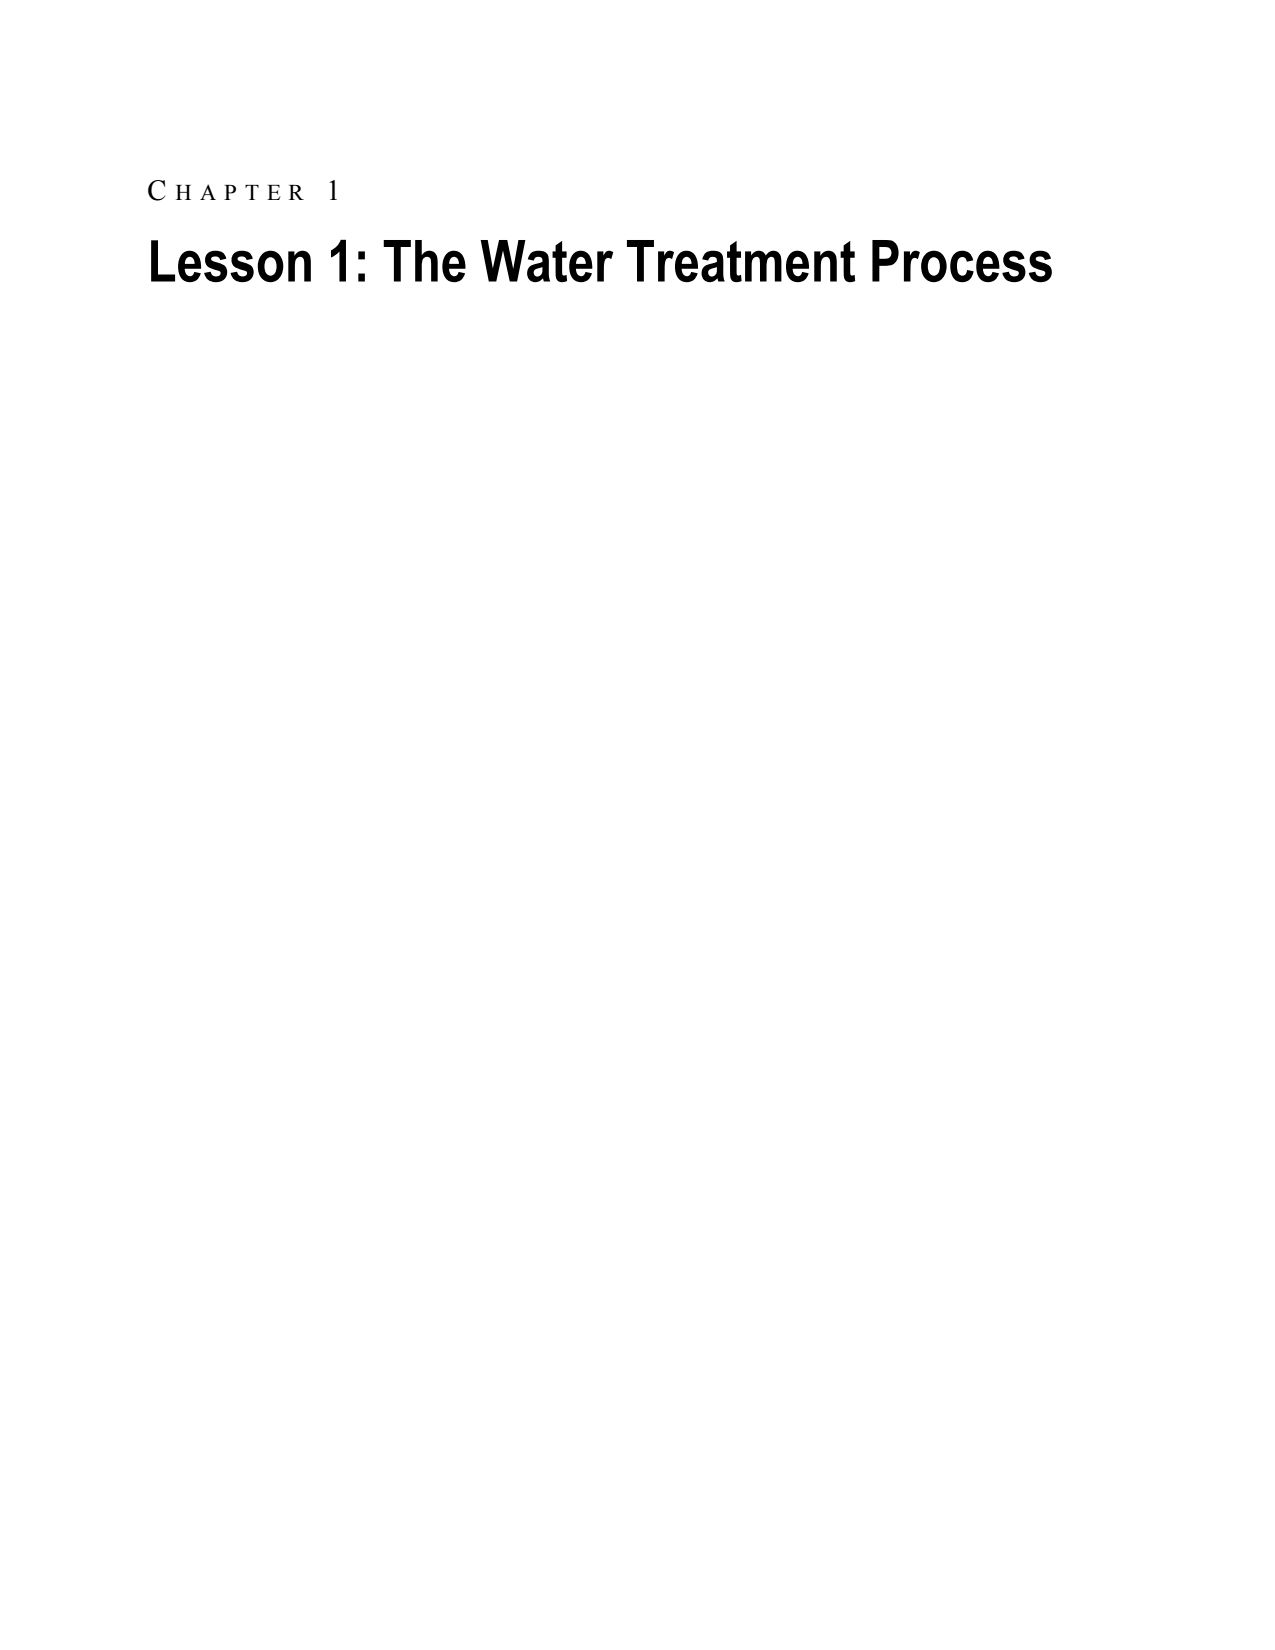 Lesson 1 – Water Treatment Process